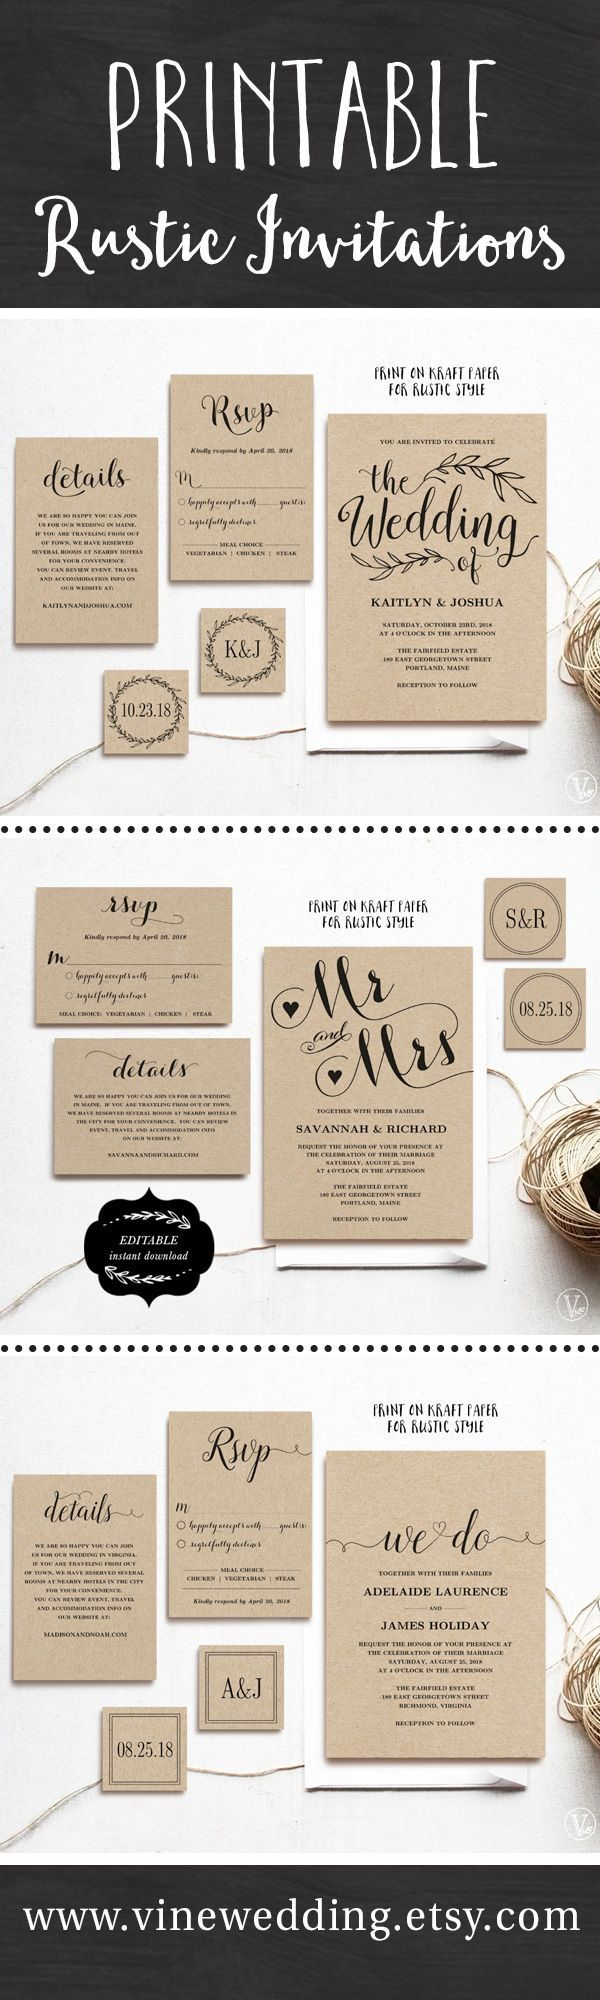 second wedding invitations wording%0A Beautiful rustic wedding invitations  Editable instant download templates  you can print as many as you